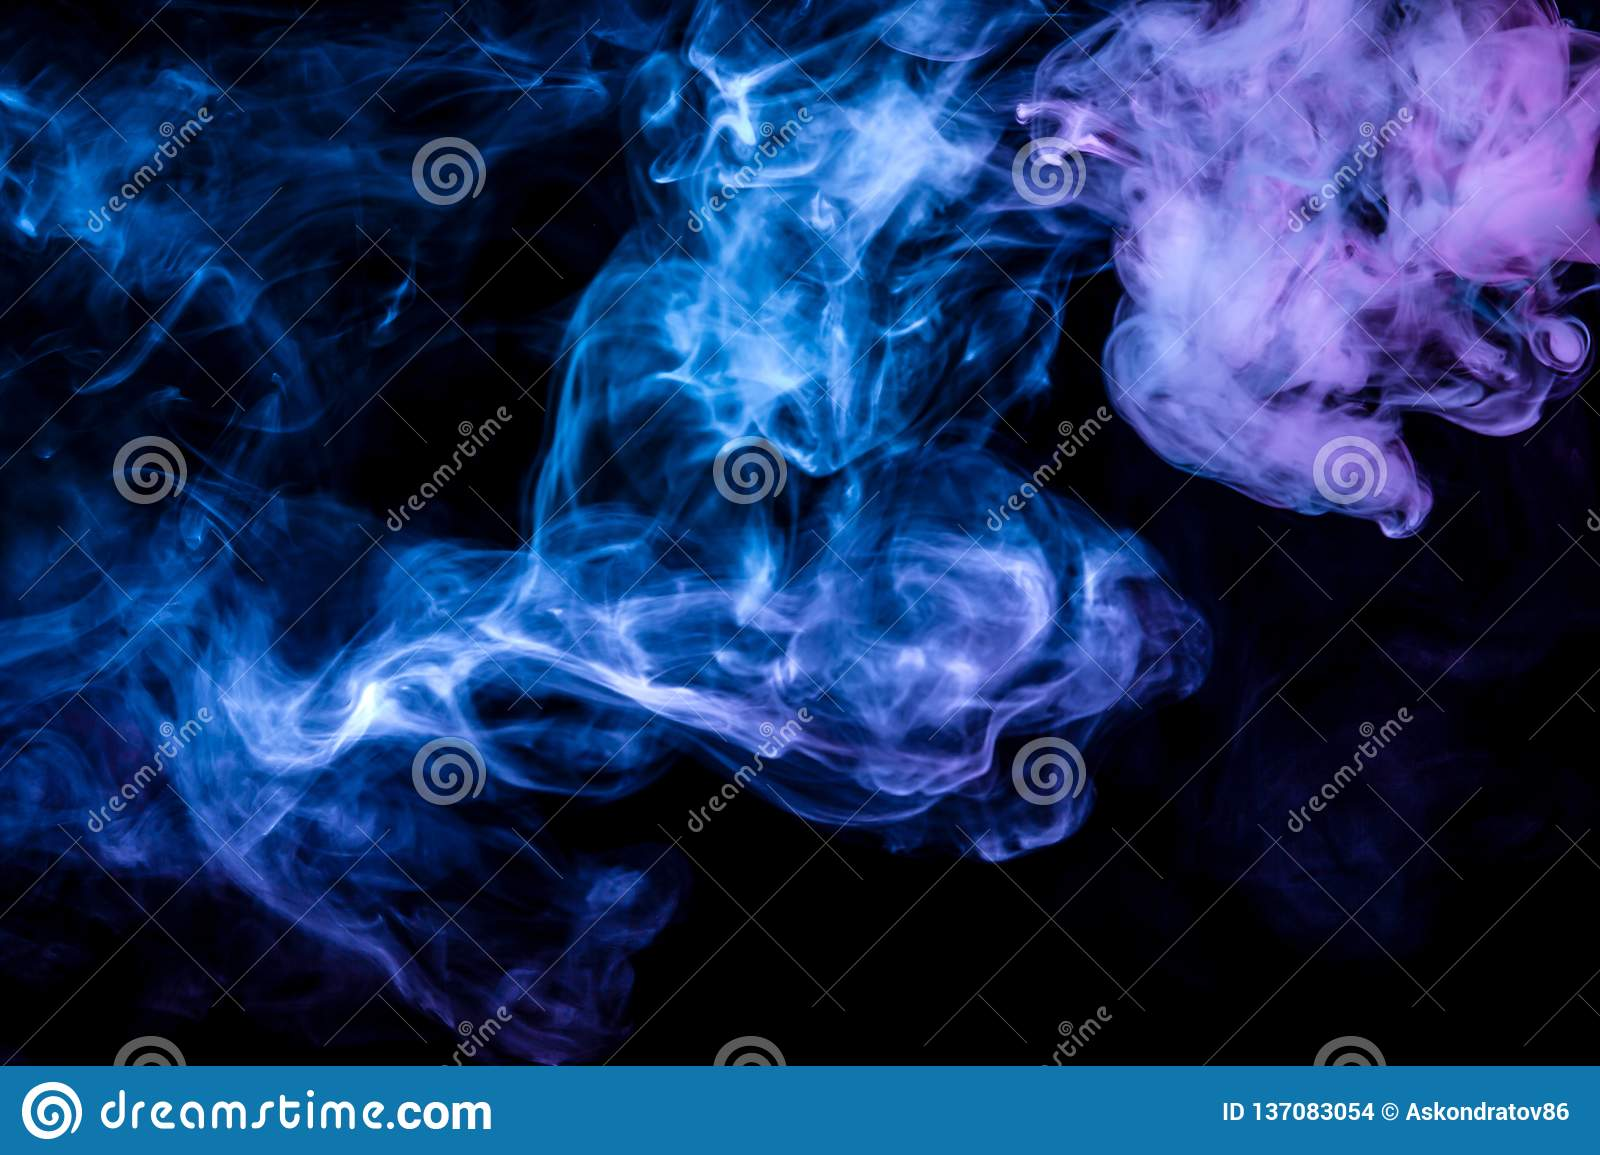 Clubs of colored smoke of blue and pink color on a black background in the form of soft clouds from vape